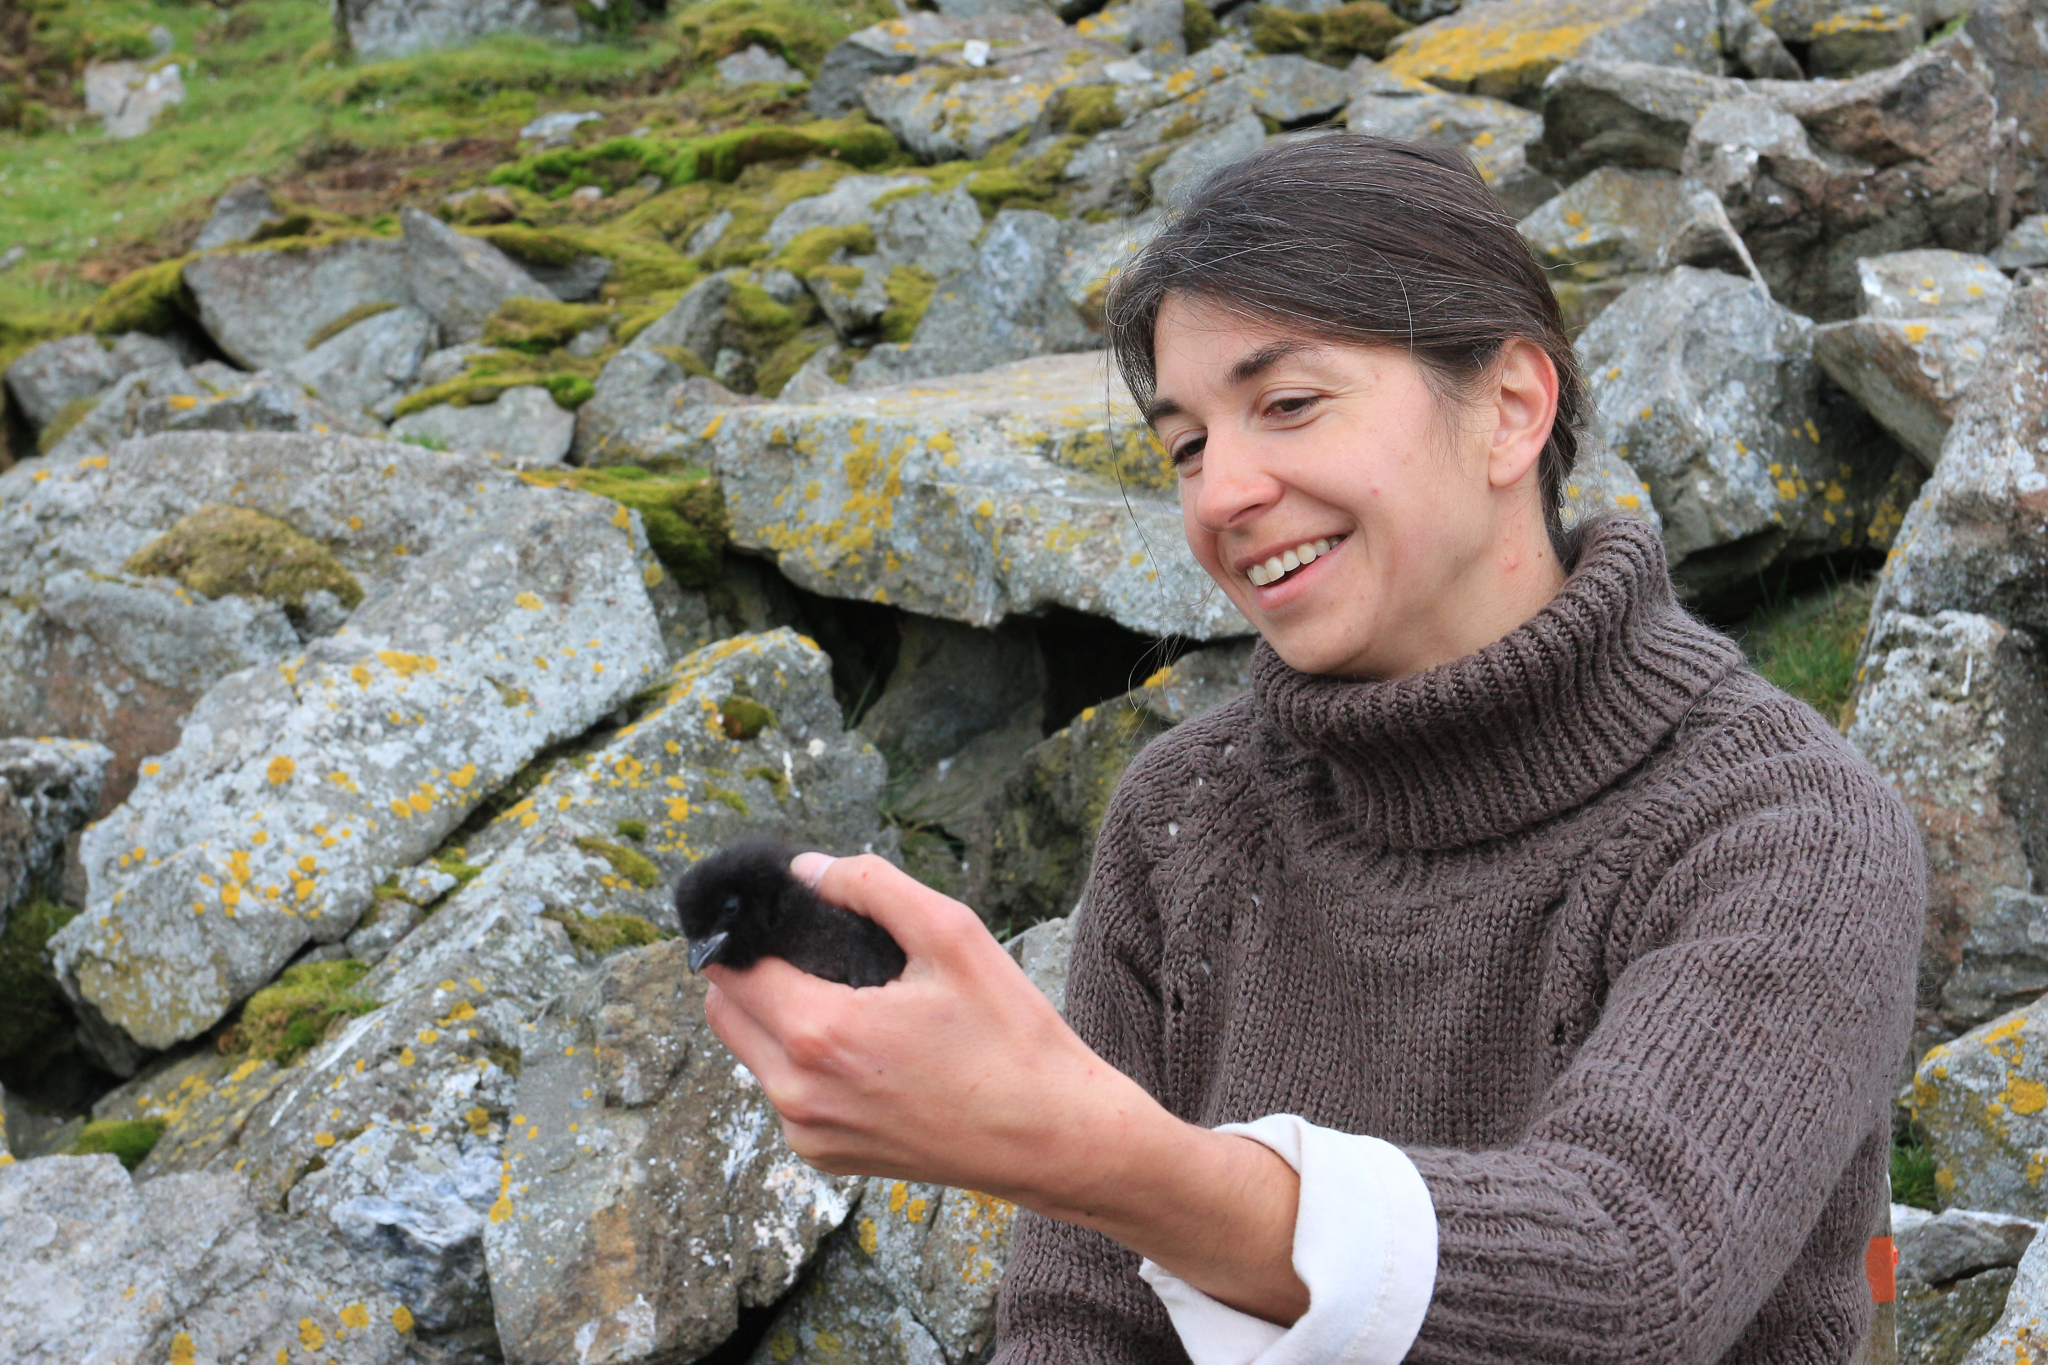 Ornithologist Katarzyna Wojczulanis-Jakubas holds a one-week-old little auk chick. The adult birds build nests in rocky crevices and line them with pebbles to keep the eggs up off the soggy ground. Photograph by Hannah Hoag